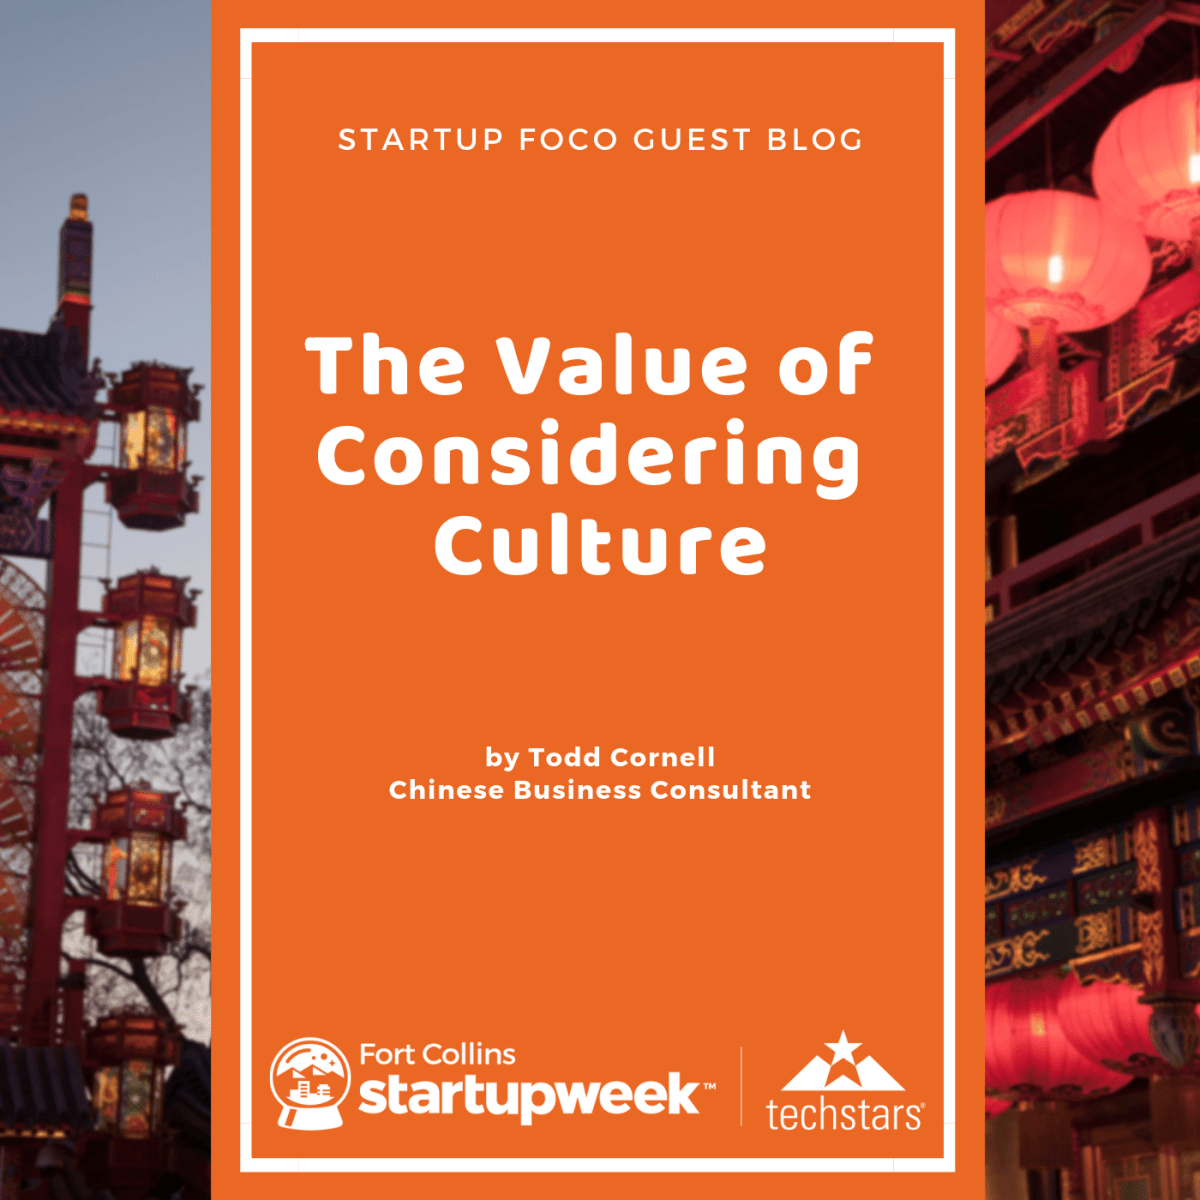 The Value of Considering Culture by Todd Cornell